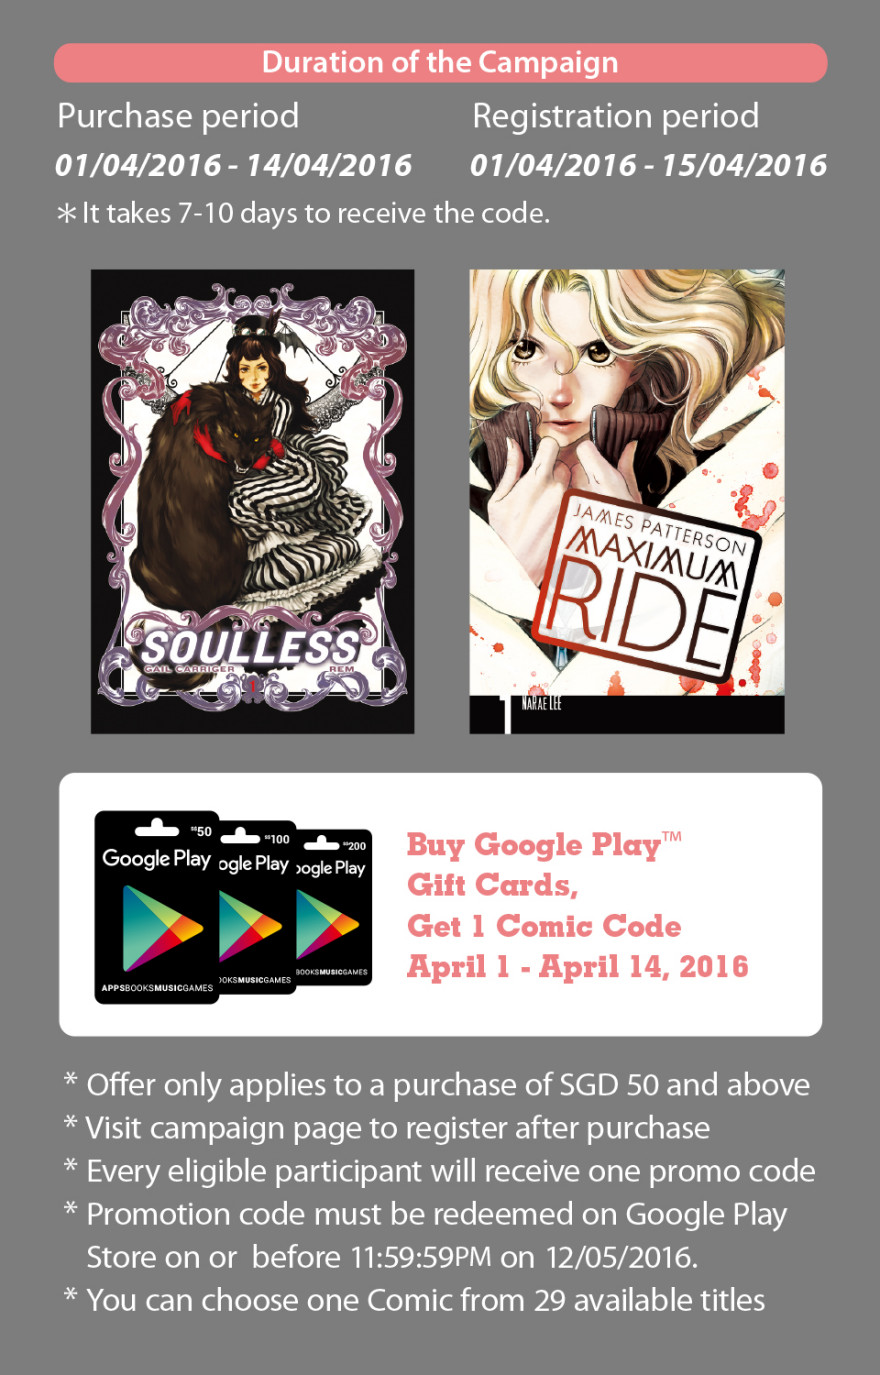 Google Play Gift Card Comic Code Present Campaign!Start Notice